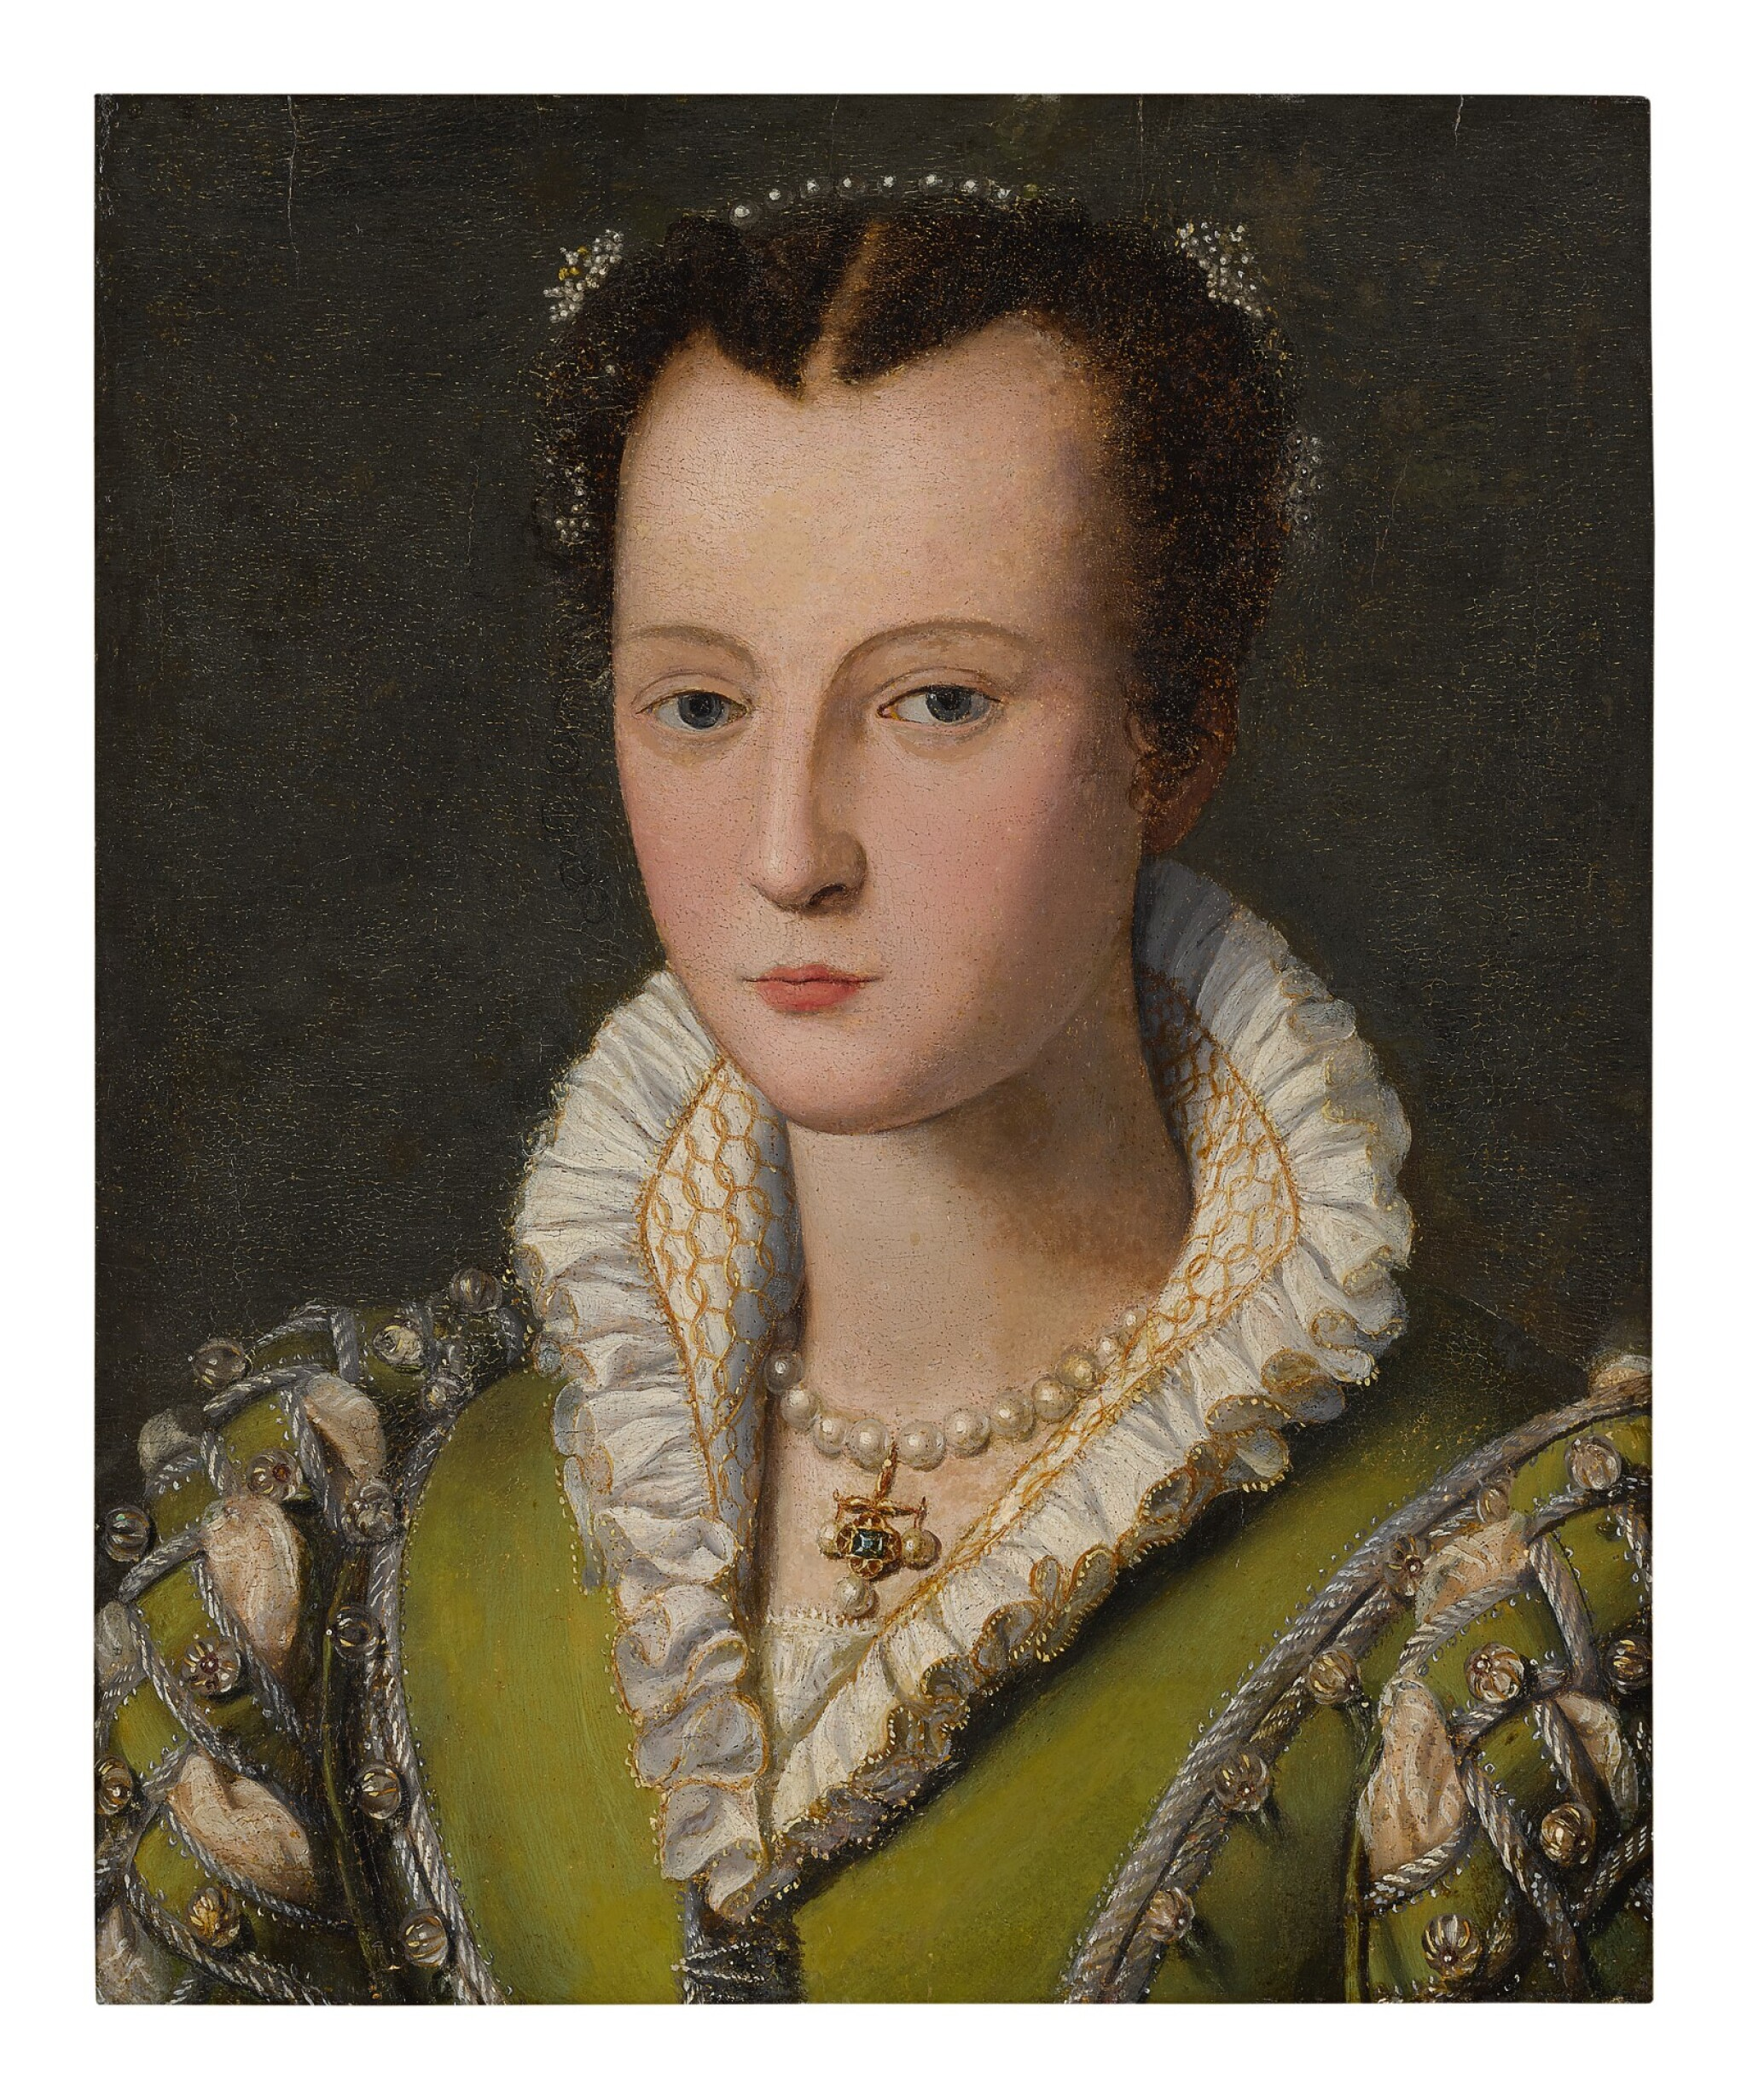 View full screen - View 1 of Lot 510. CIRCLE OF ALESSANDRO ALLORI | PORTRAIT OF A LADY, SAID TO BE A MEDICI, BUST LENGTH, WEARING A GREEN DRESS AND PEARLED NECKLACE.